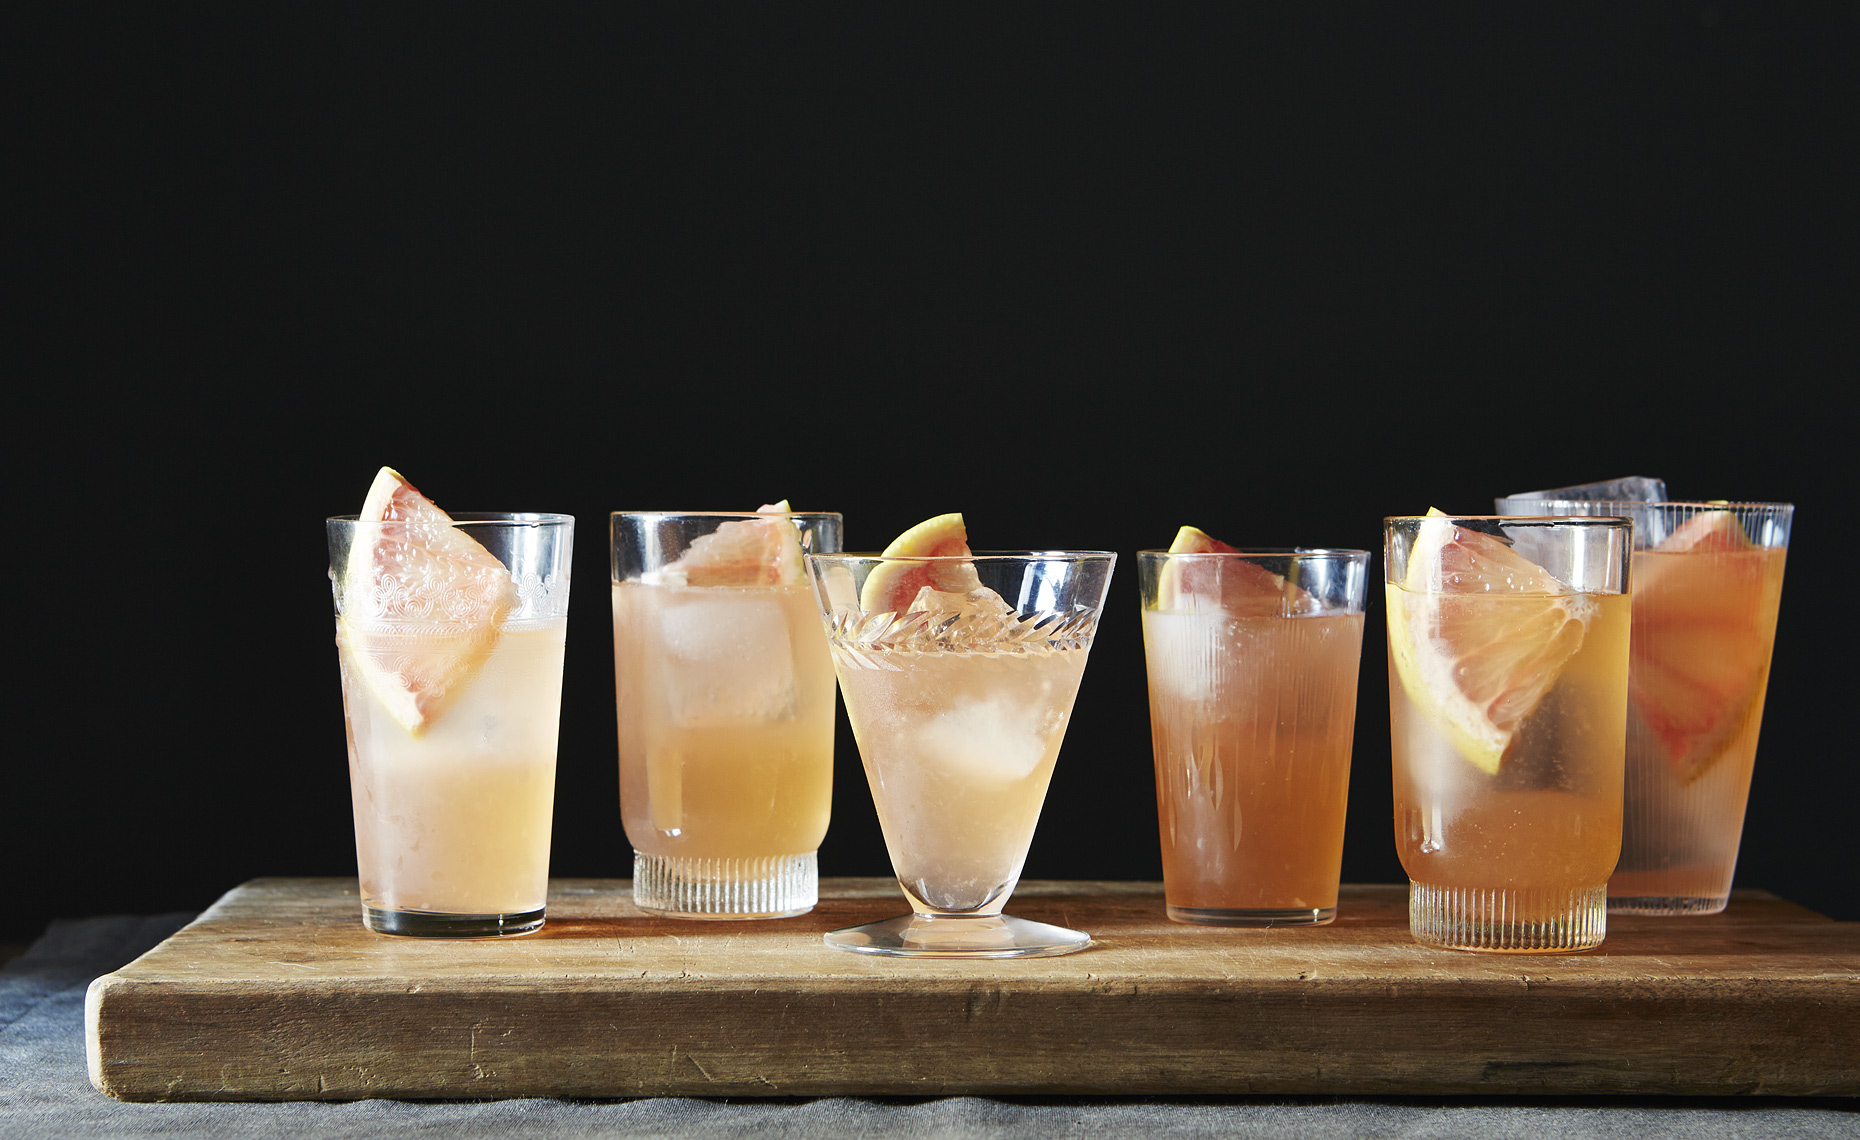 075_mark_weinberg_gin-aperol-punch_food52_14-11-04_0510_2